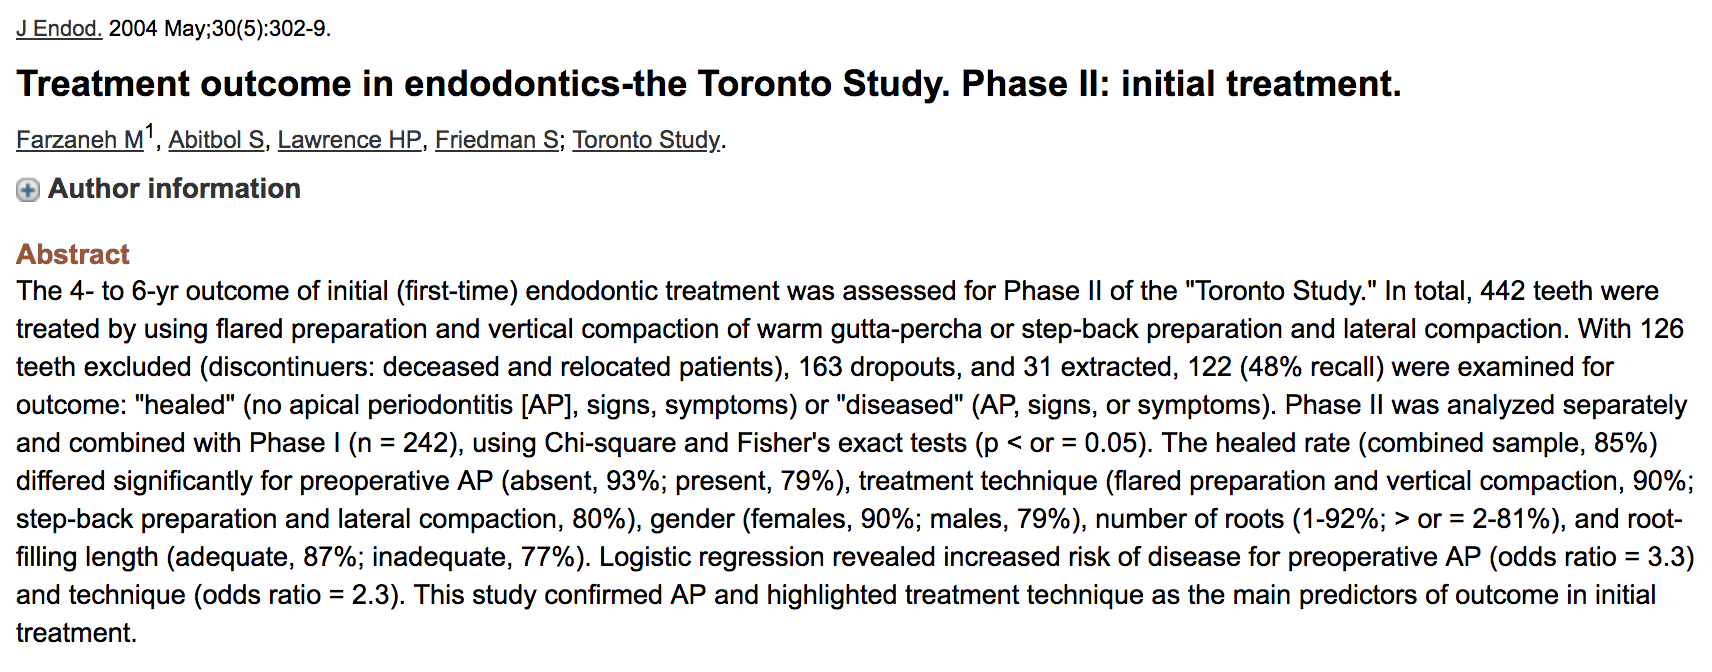 Dr. Sarah Abitbol - Treatment outcome in endodontics-the Toronto Study. Phase II: initial treatment